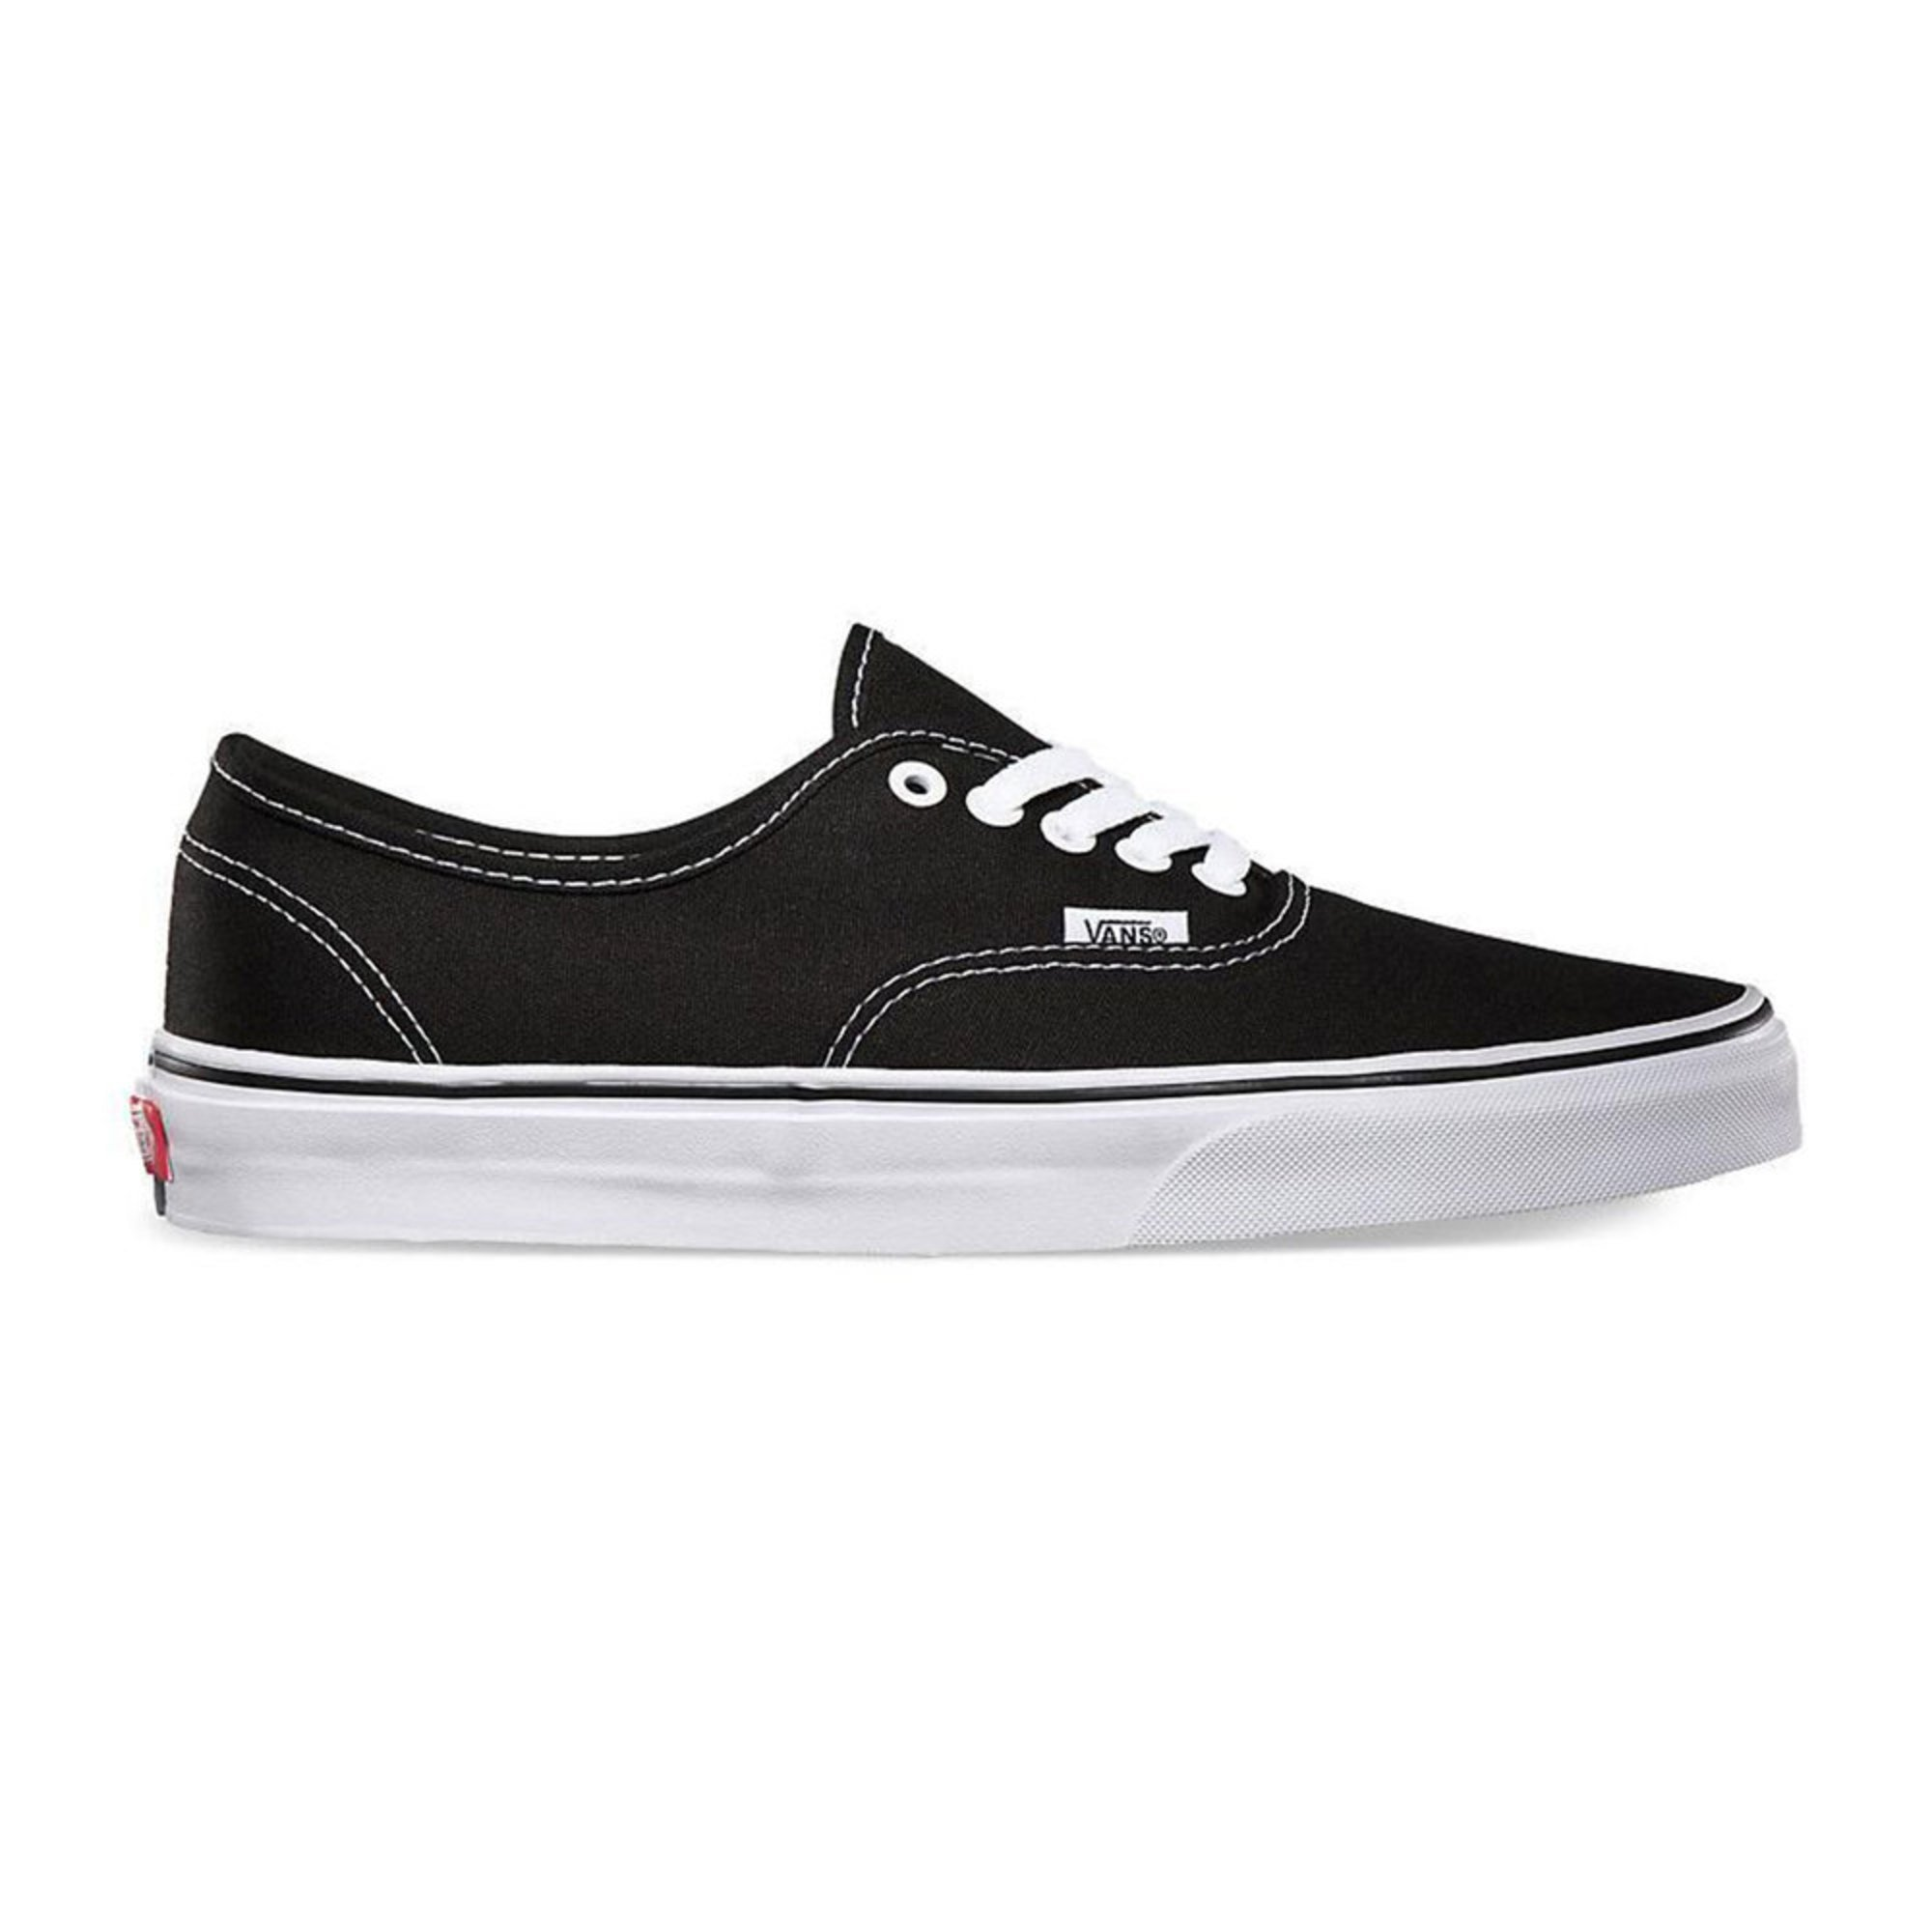 6ef0f0526eee Vans. Vans Men s Authentic Skate Shoe